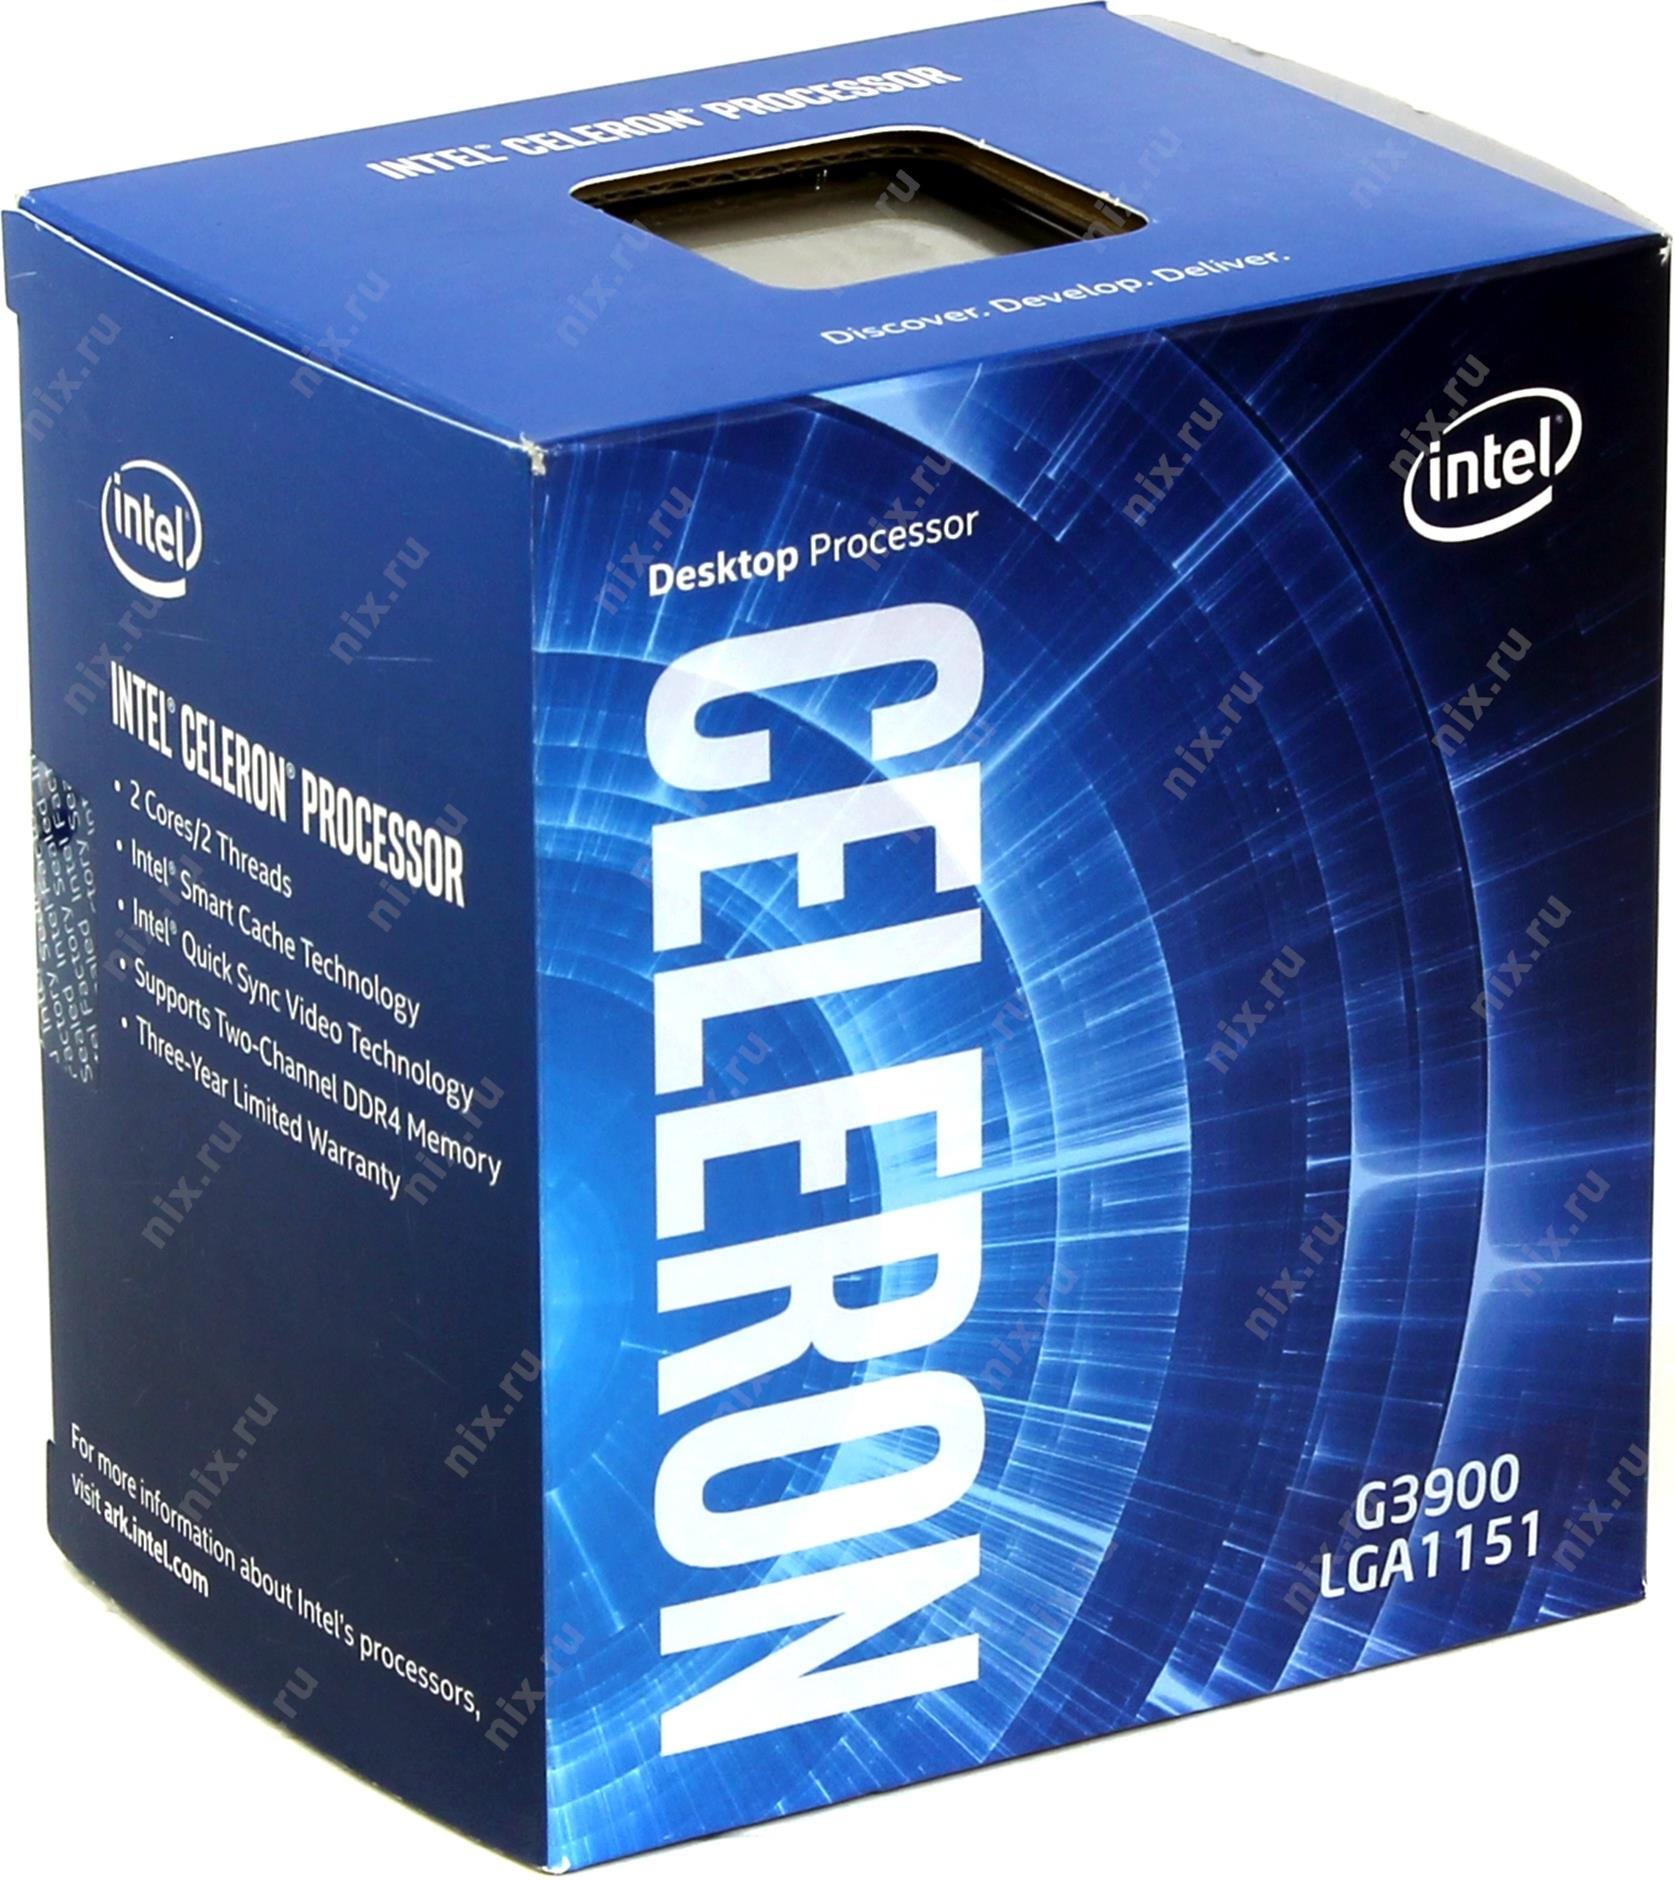 Intel Celeron Processor G3900  (2M Cache, 2.80 GHz)